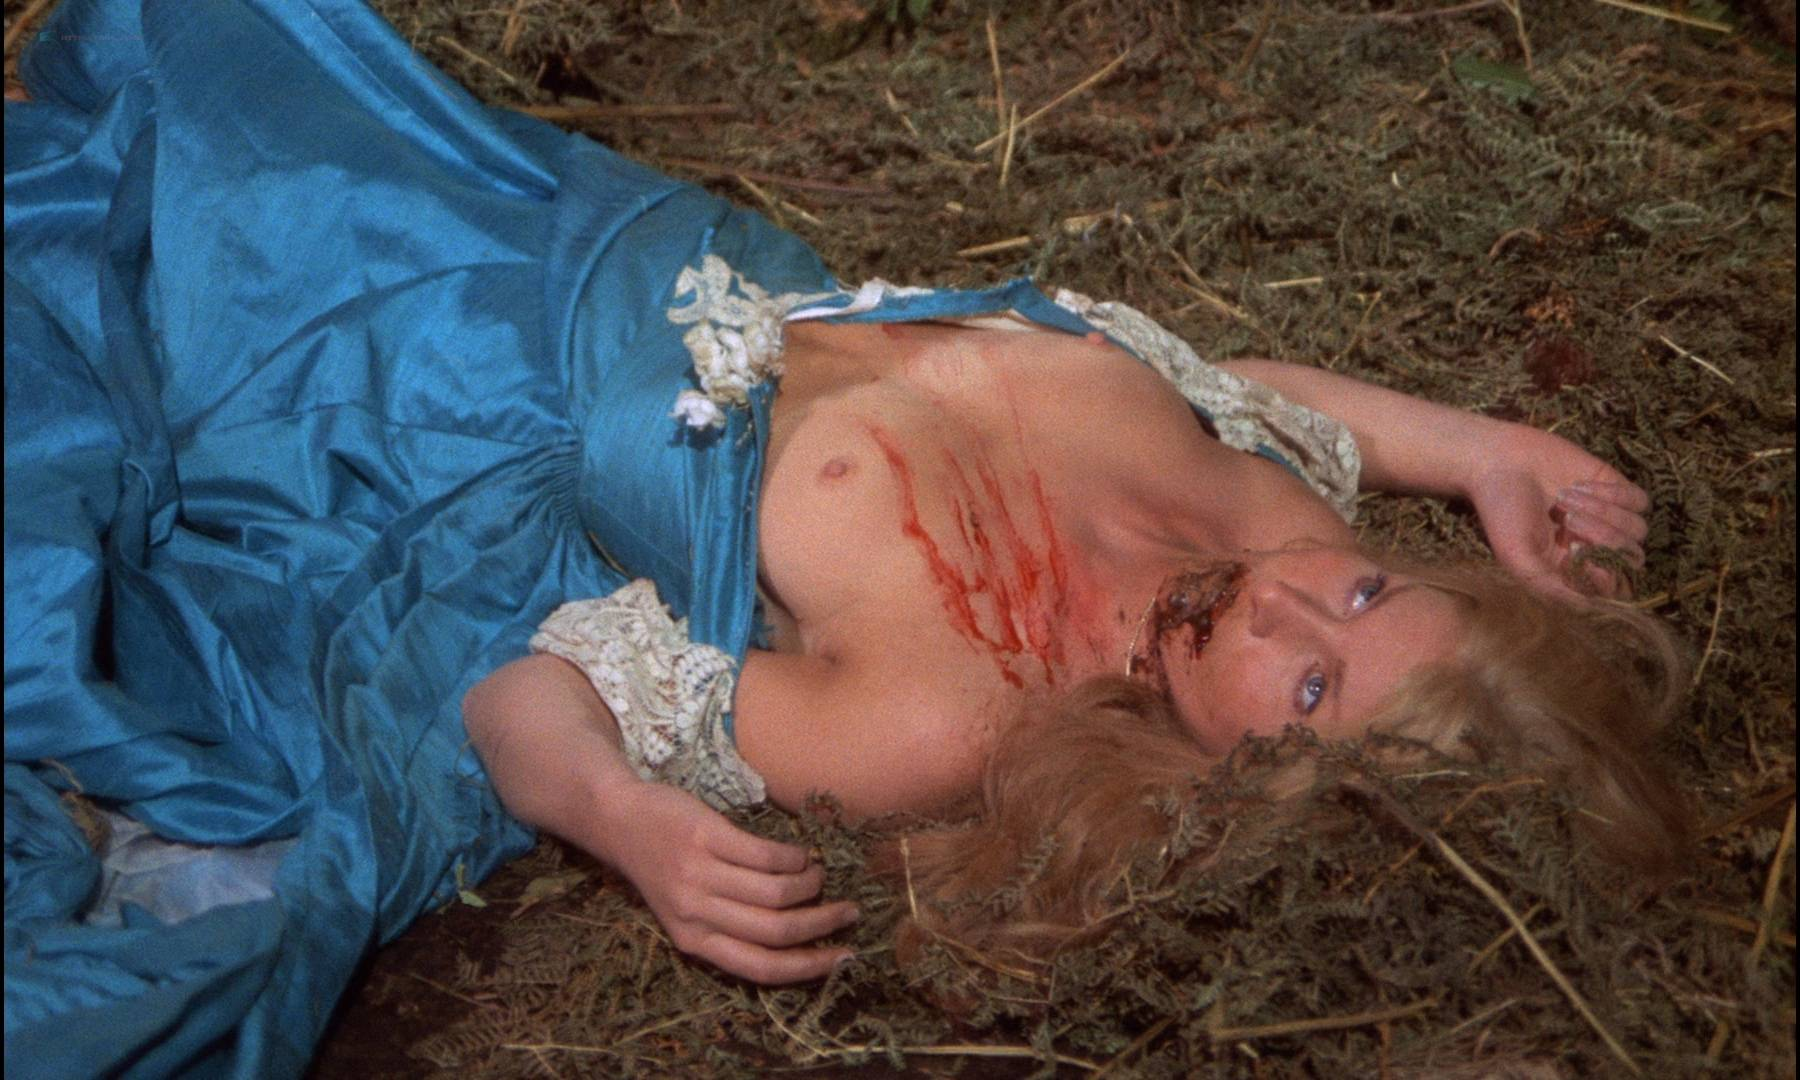 Gillian Hills nude topless Virginia Wetherell nude full frontal - Demons of the Mind (UK-1972) HD 1080p BluRay (2)